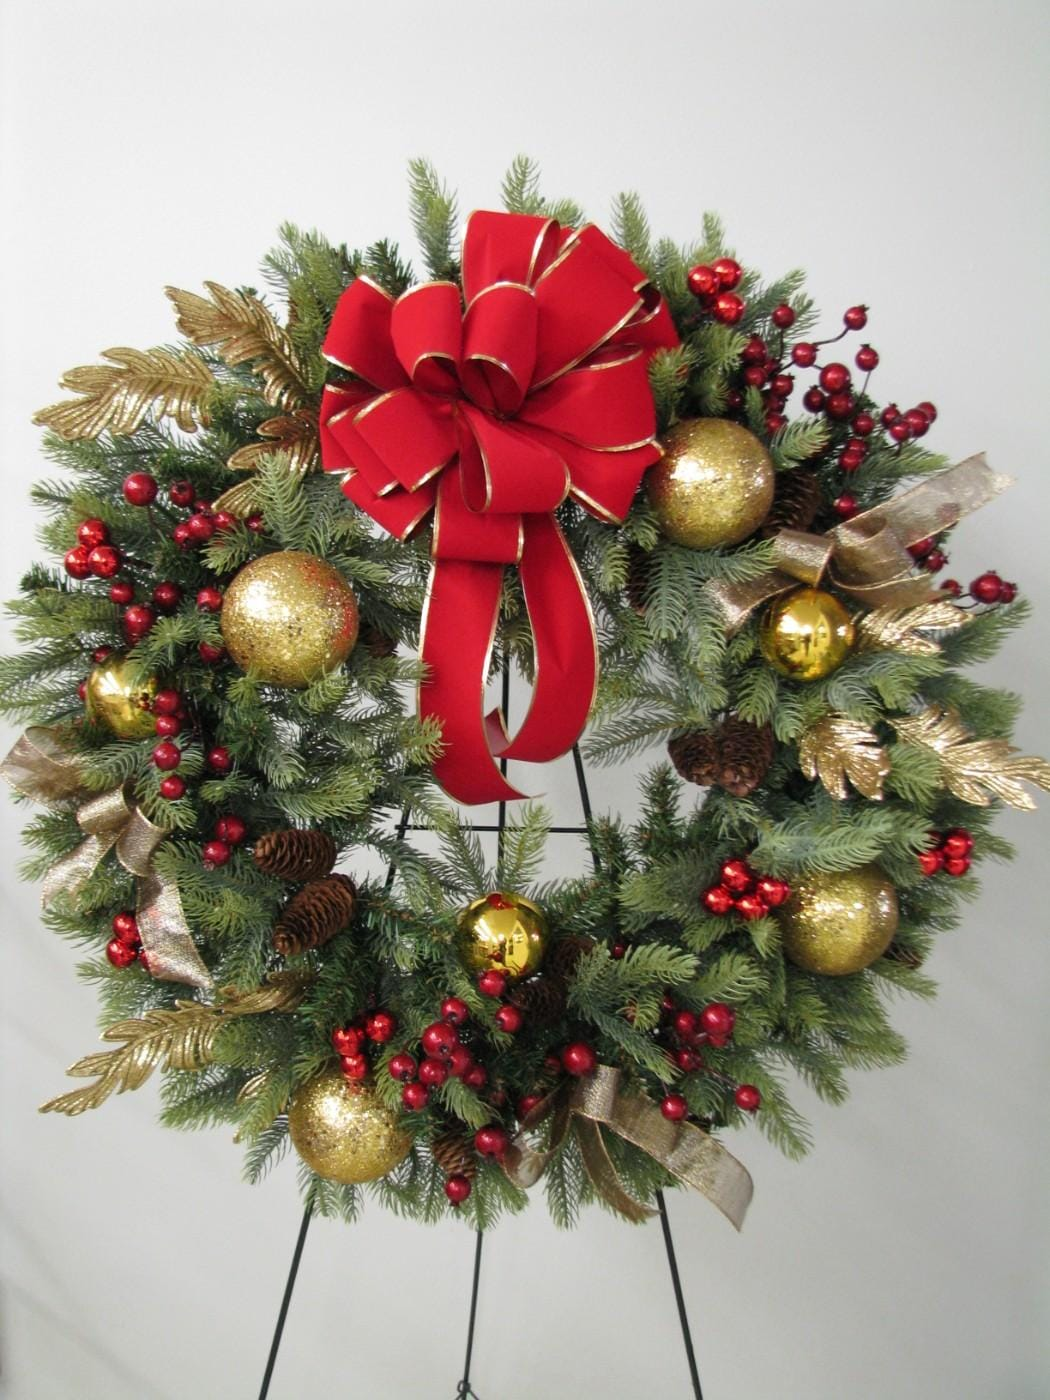 Christmas Wreath Design Class